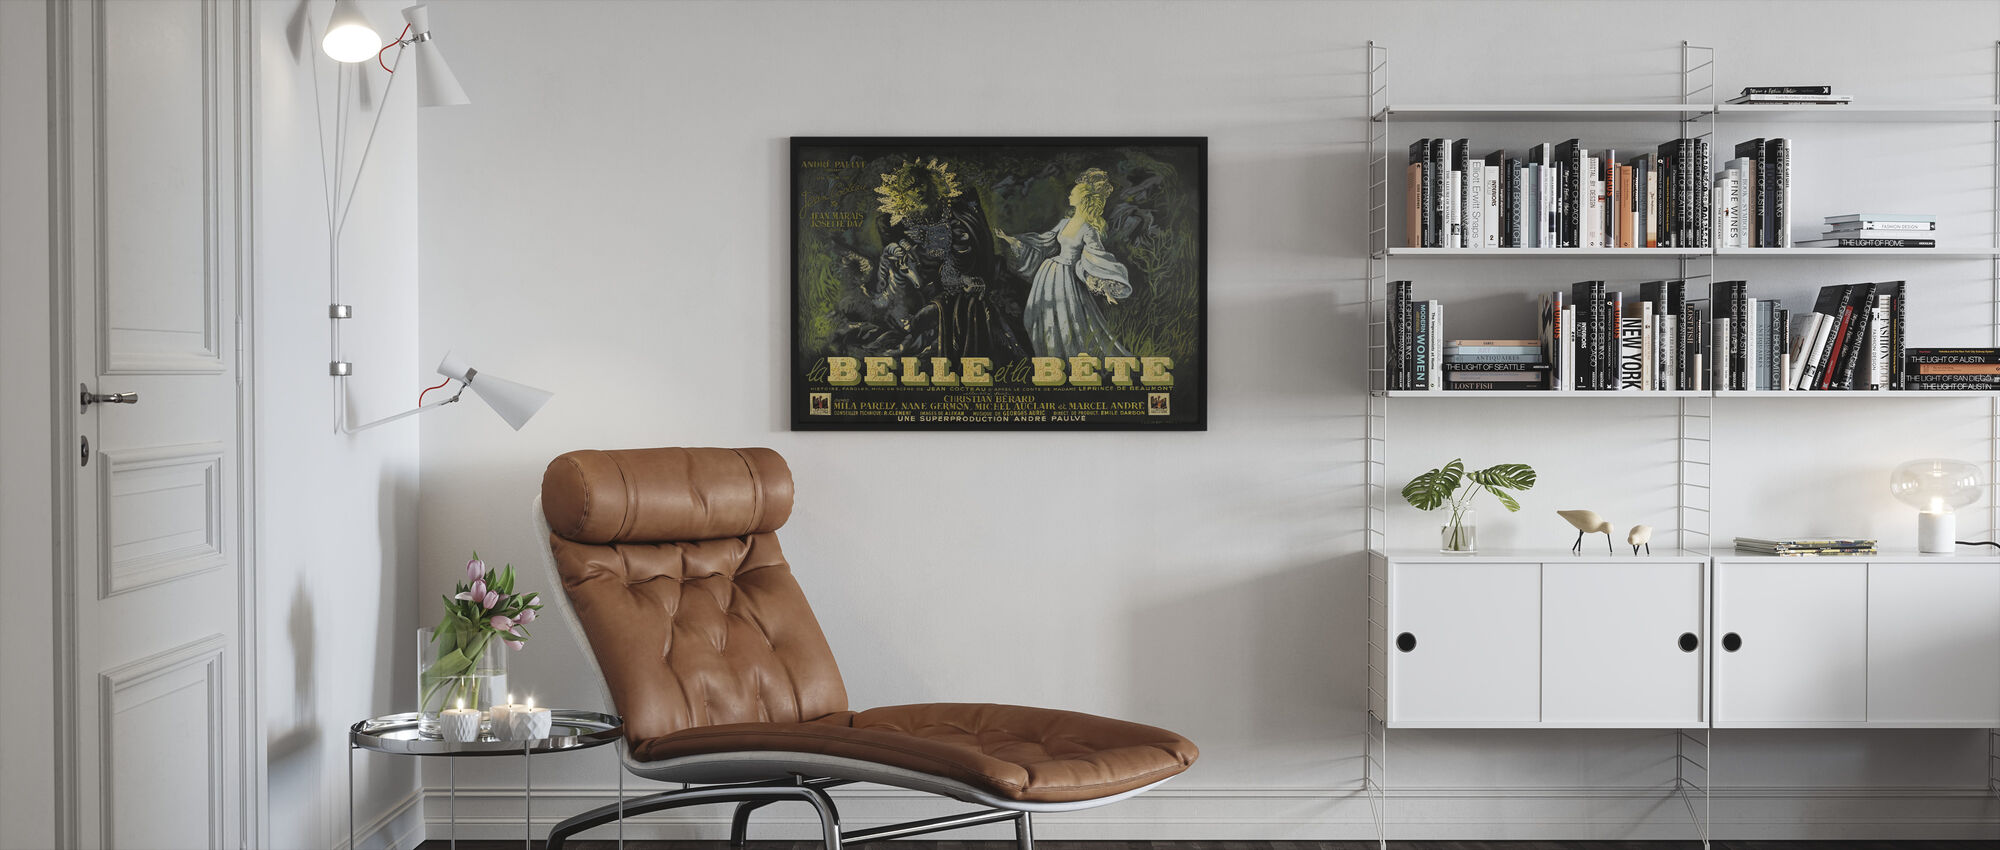 Beauty and the Beast - Framed print - Living Room